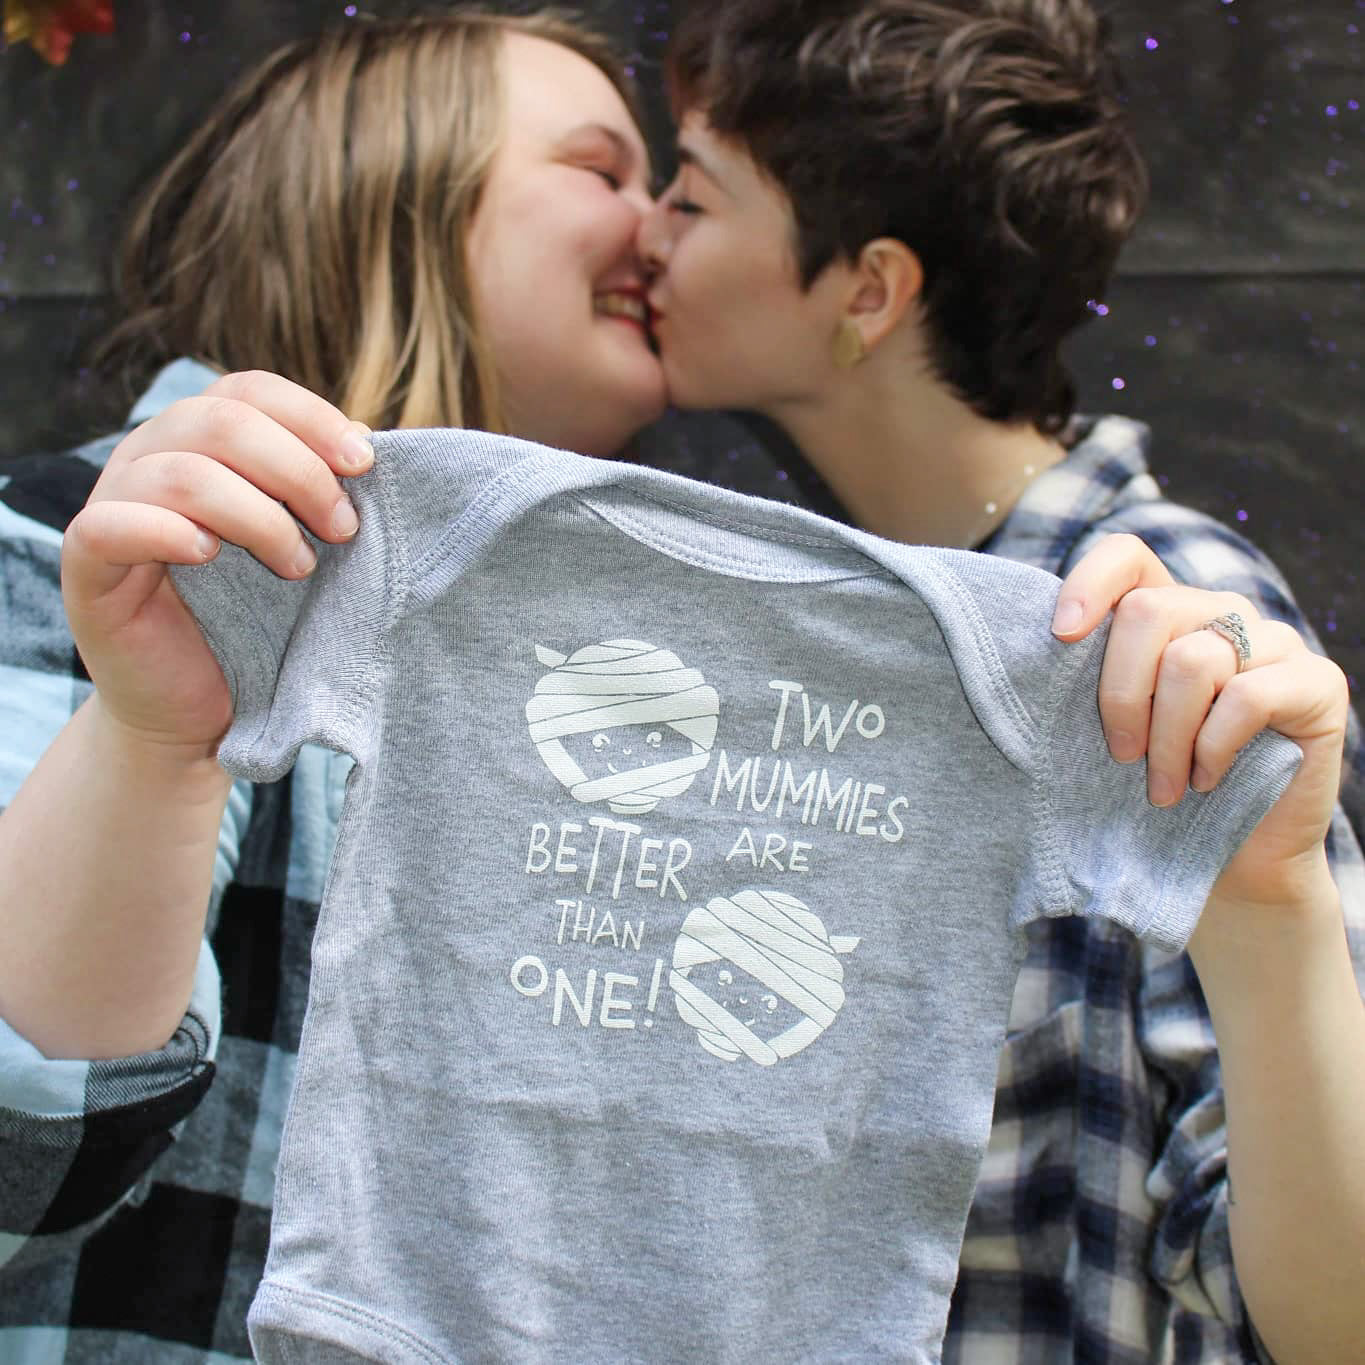 Couple kissing and holding a onesie that says two mummies are better than one.